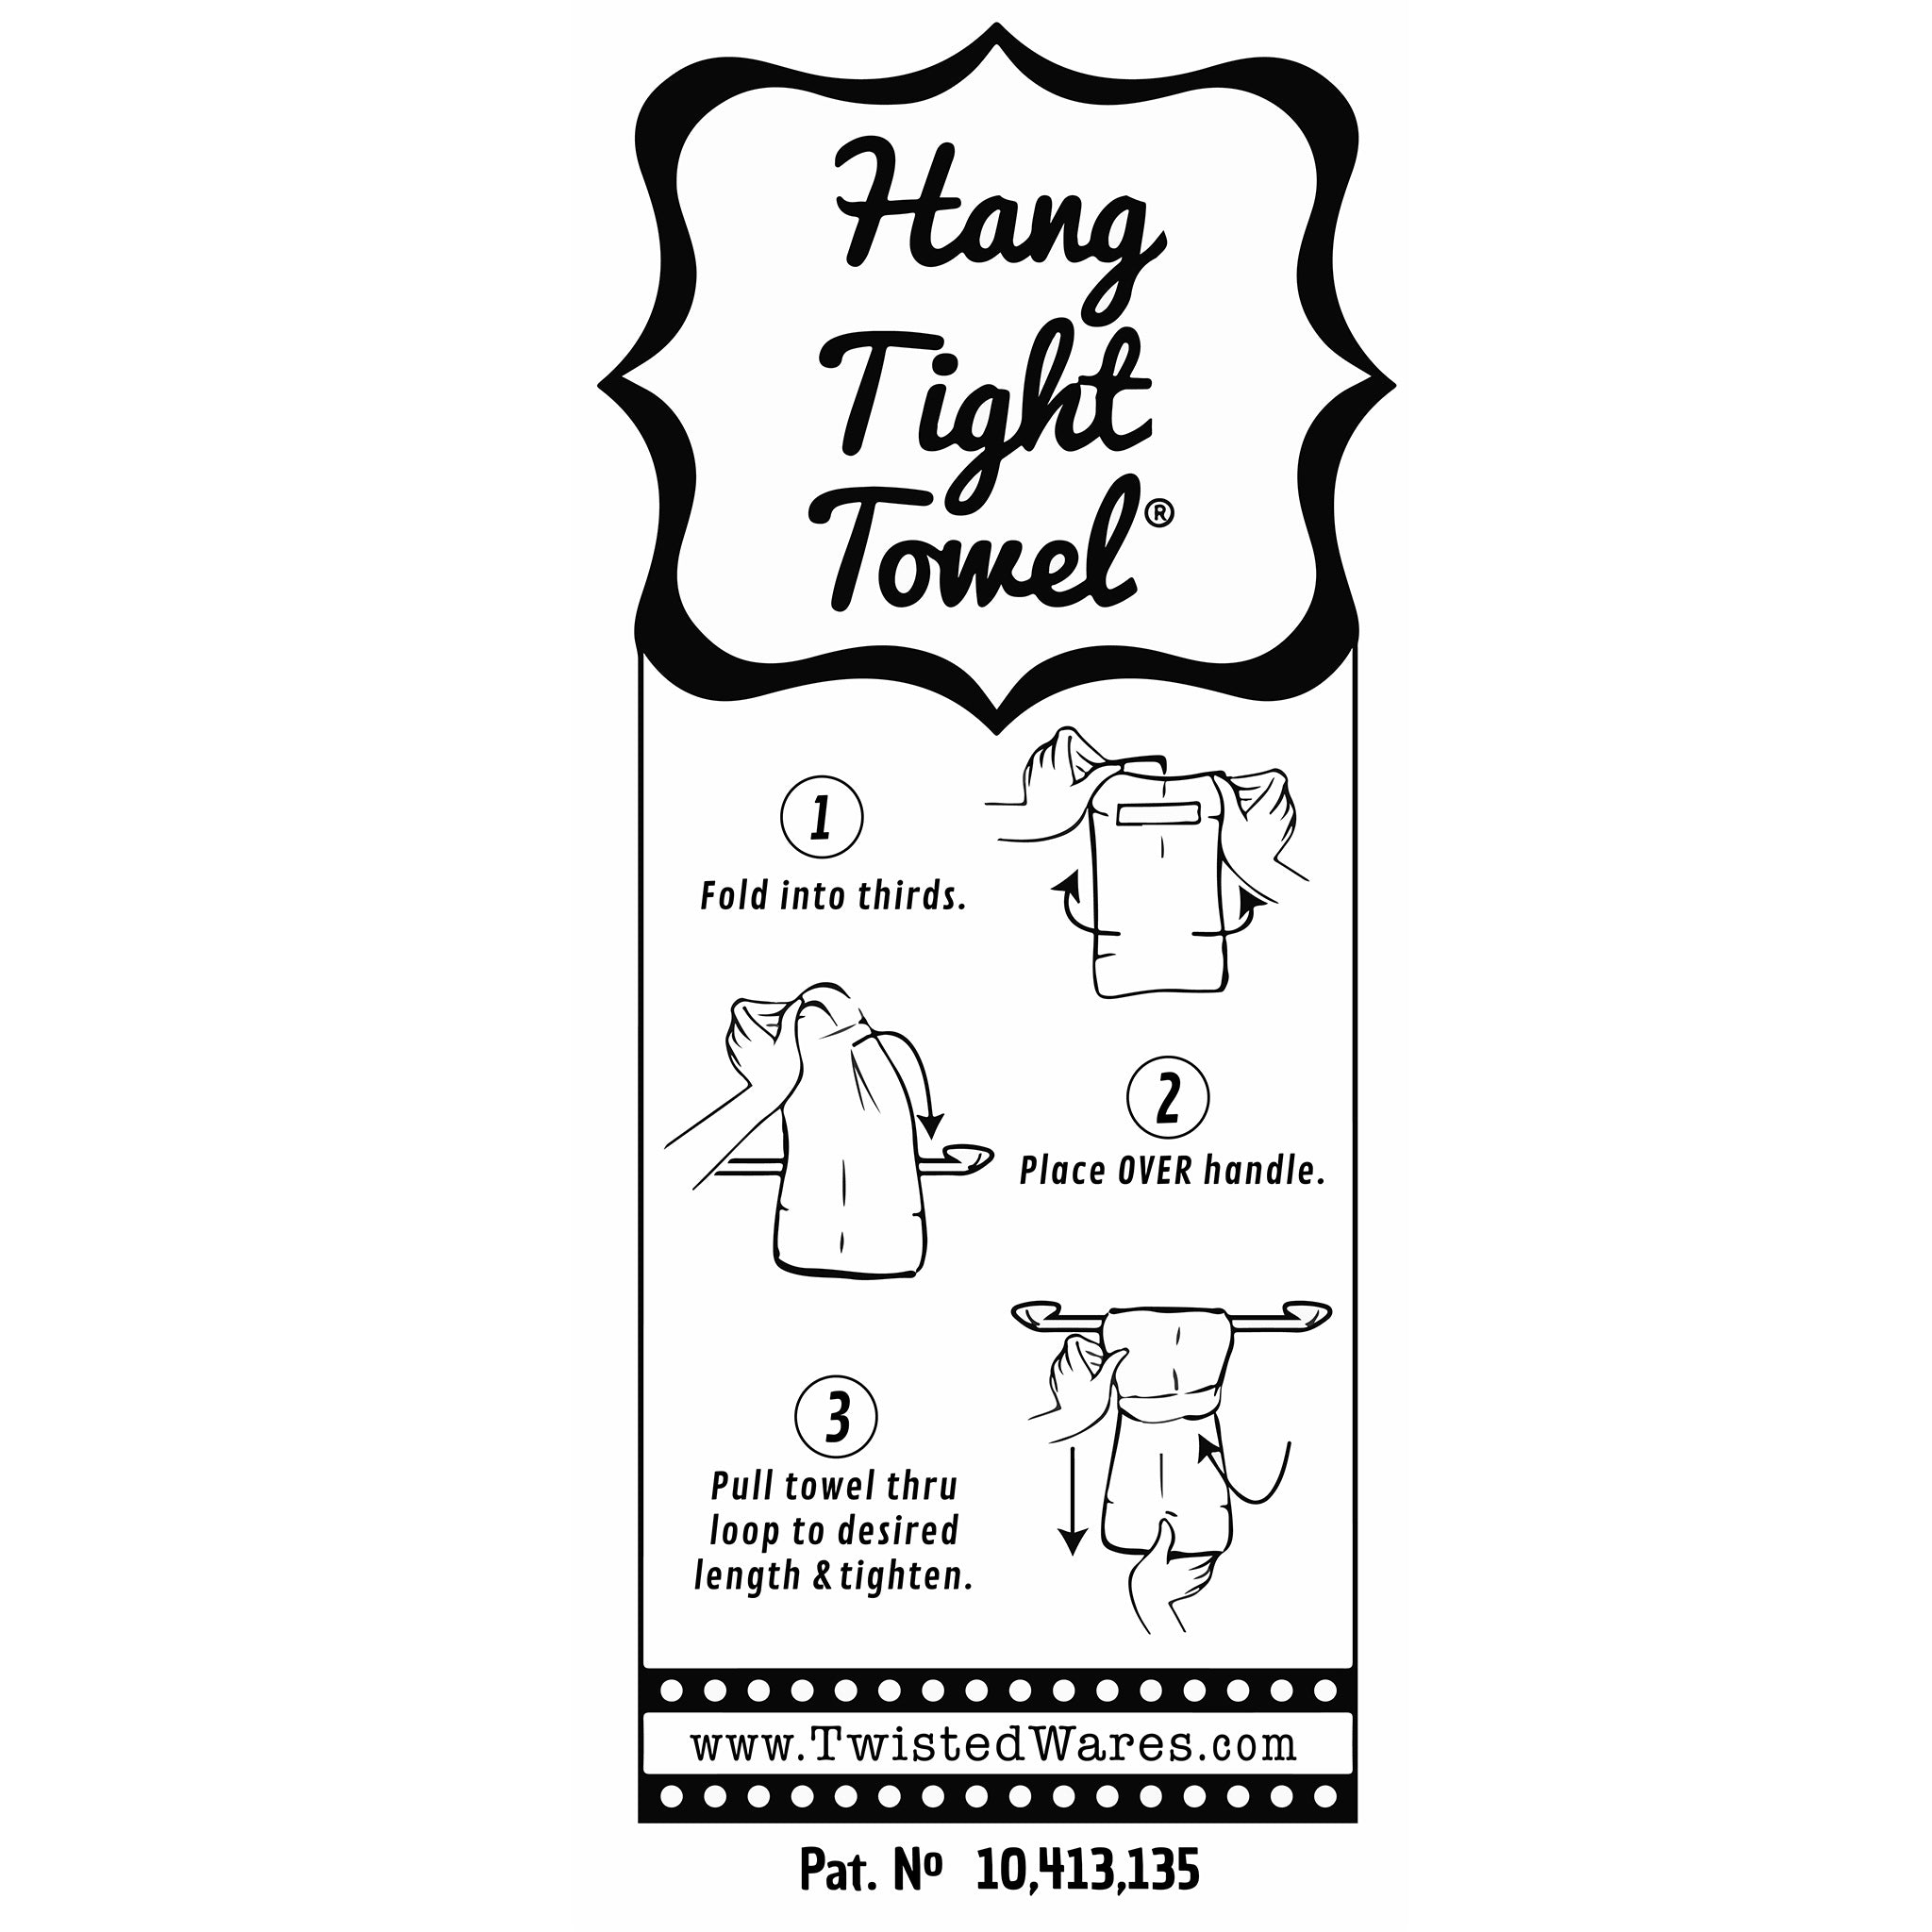 Your Lack of Holiday Spirit Is Disturbing Flour Sack Hang Tight Towel®